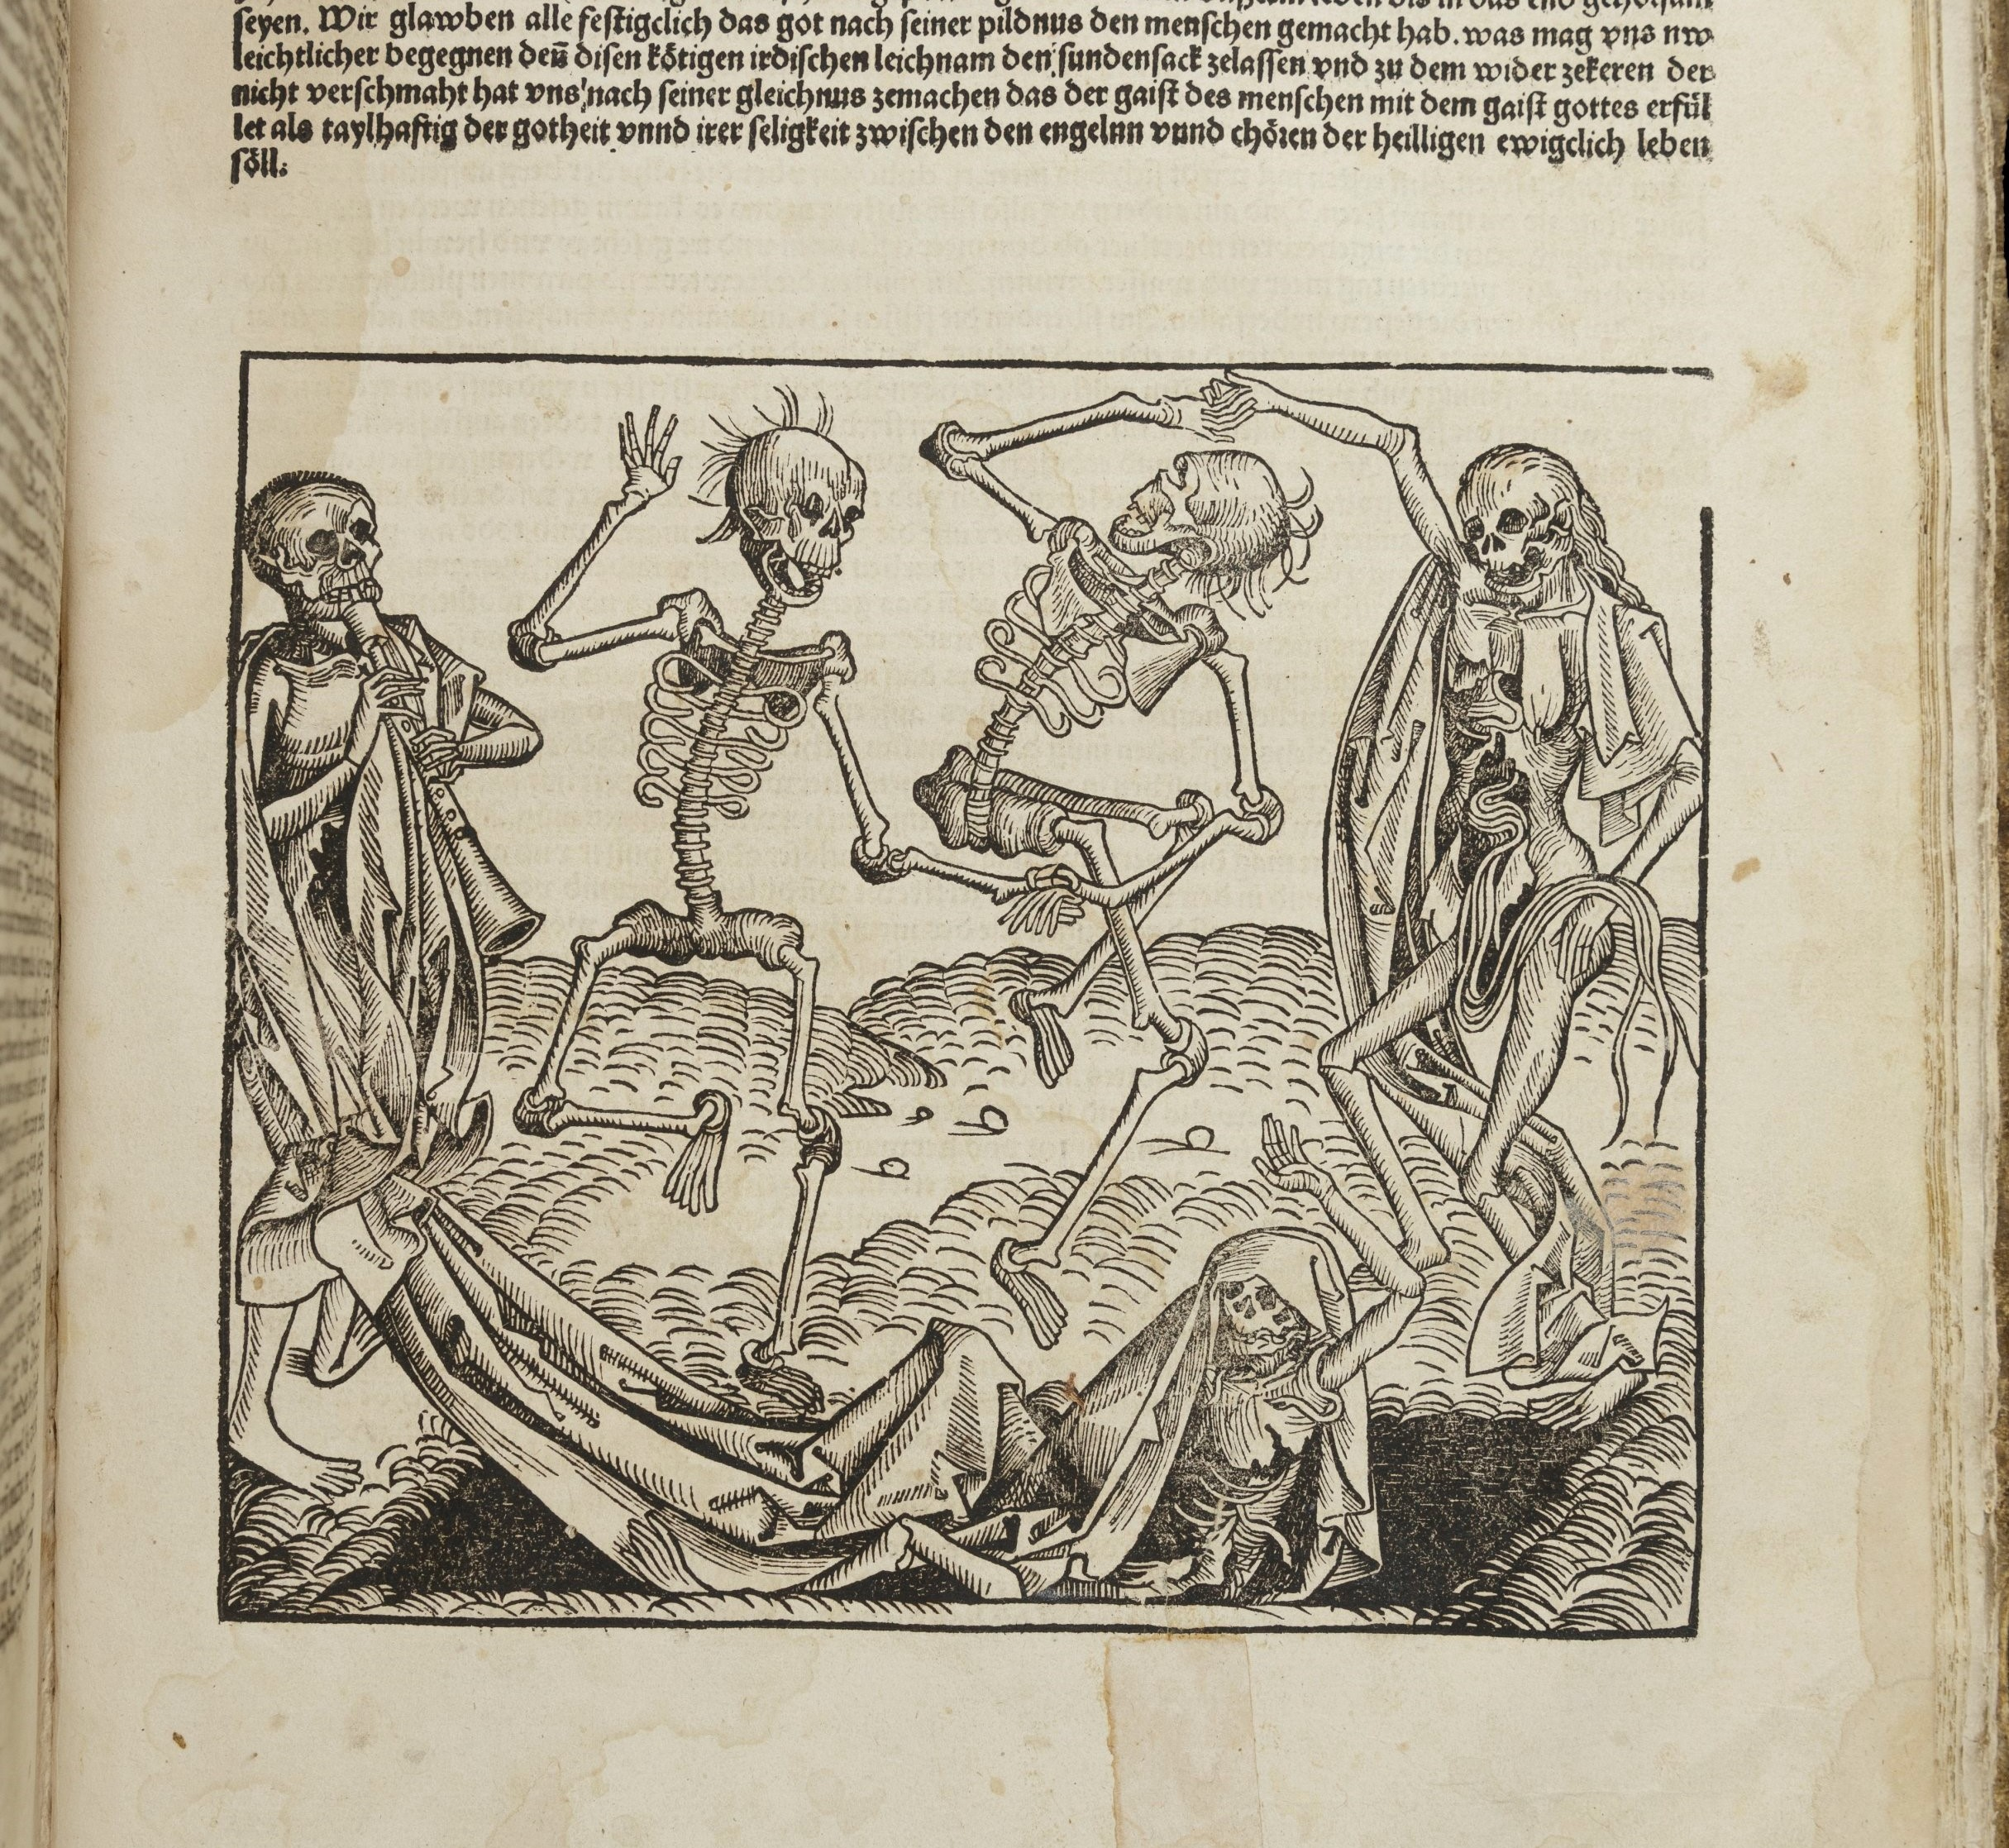 Woodcut image of three skeletons dancing with one another above a fourth, who is rising out of the grave to join them. On the far left of the image a fifth skeleton plays a pipe.